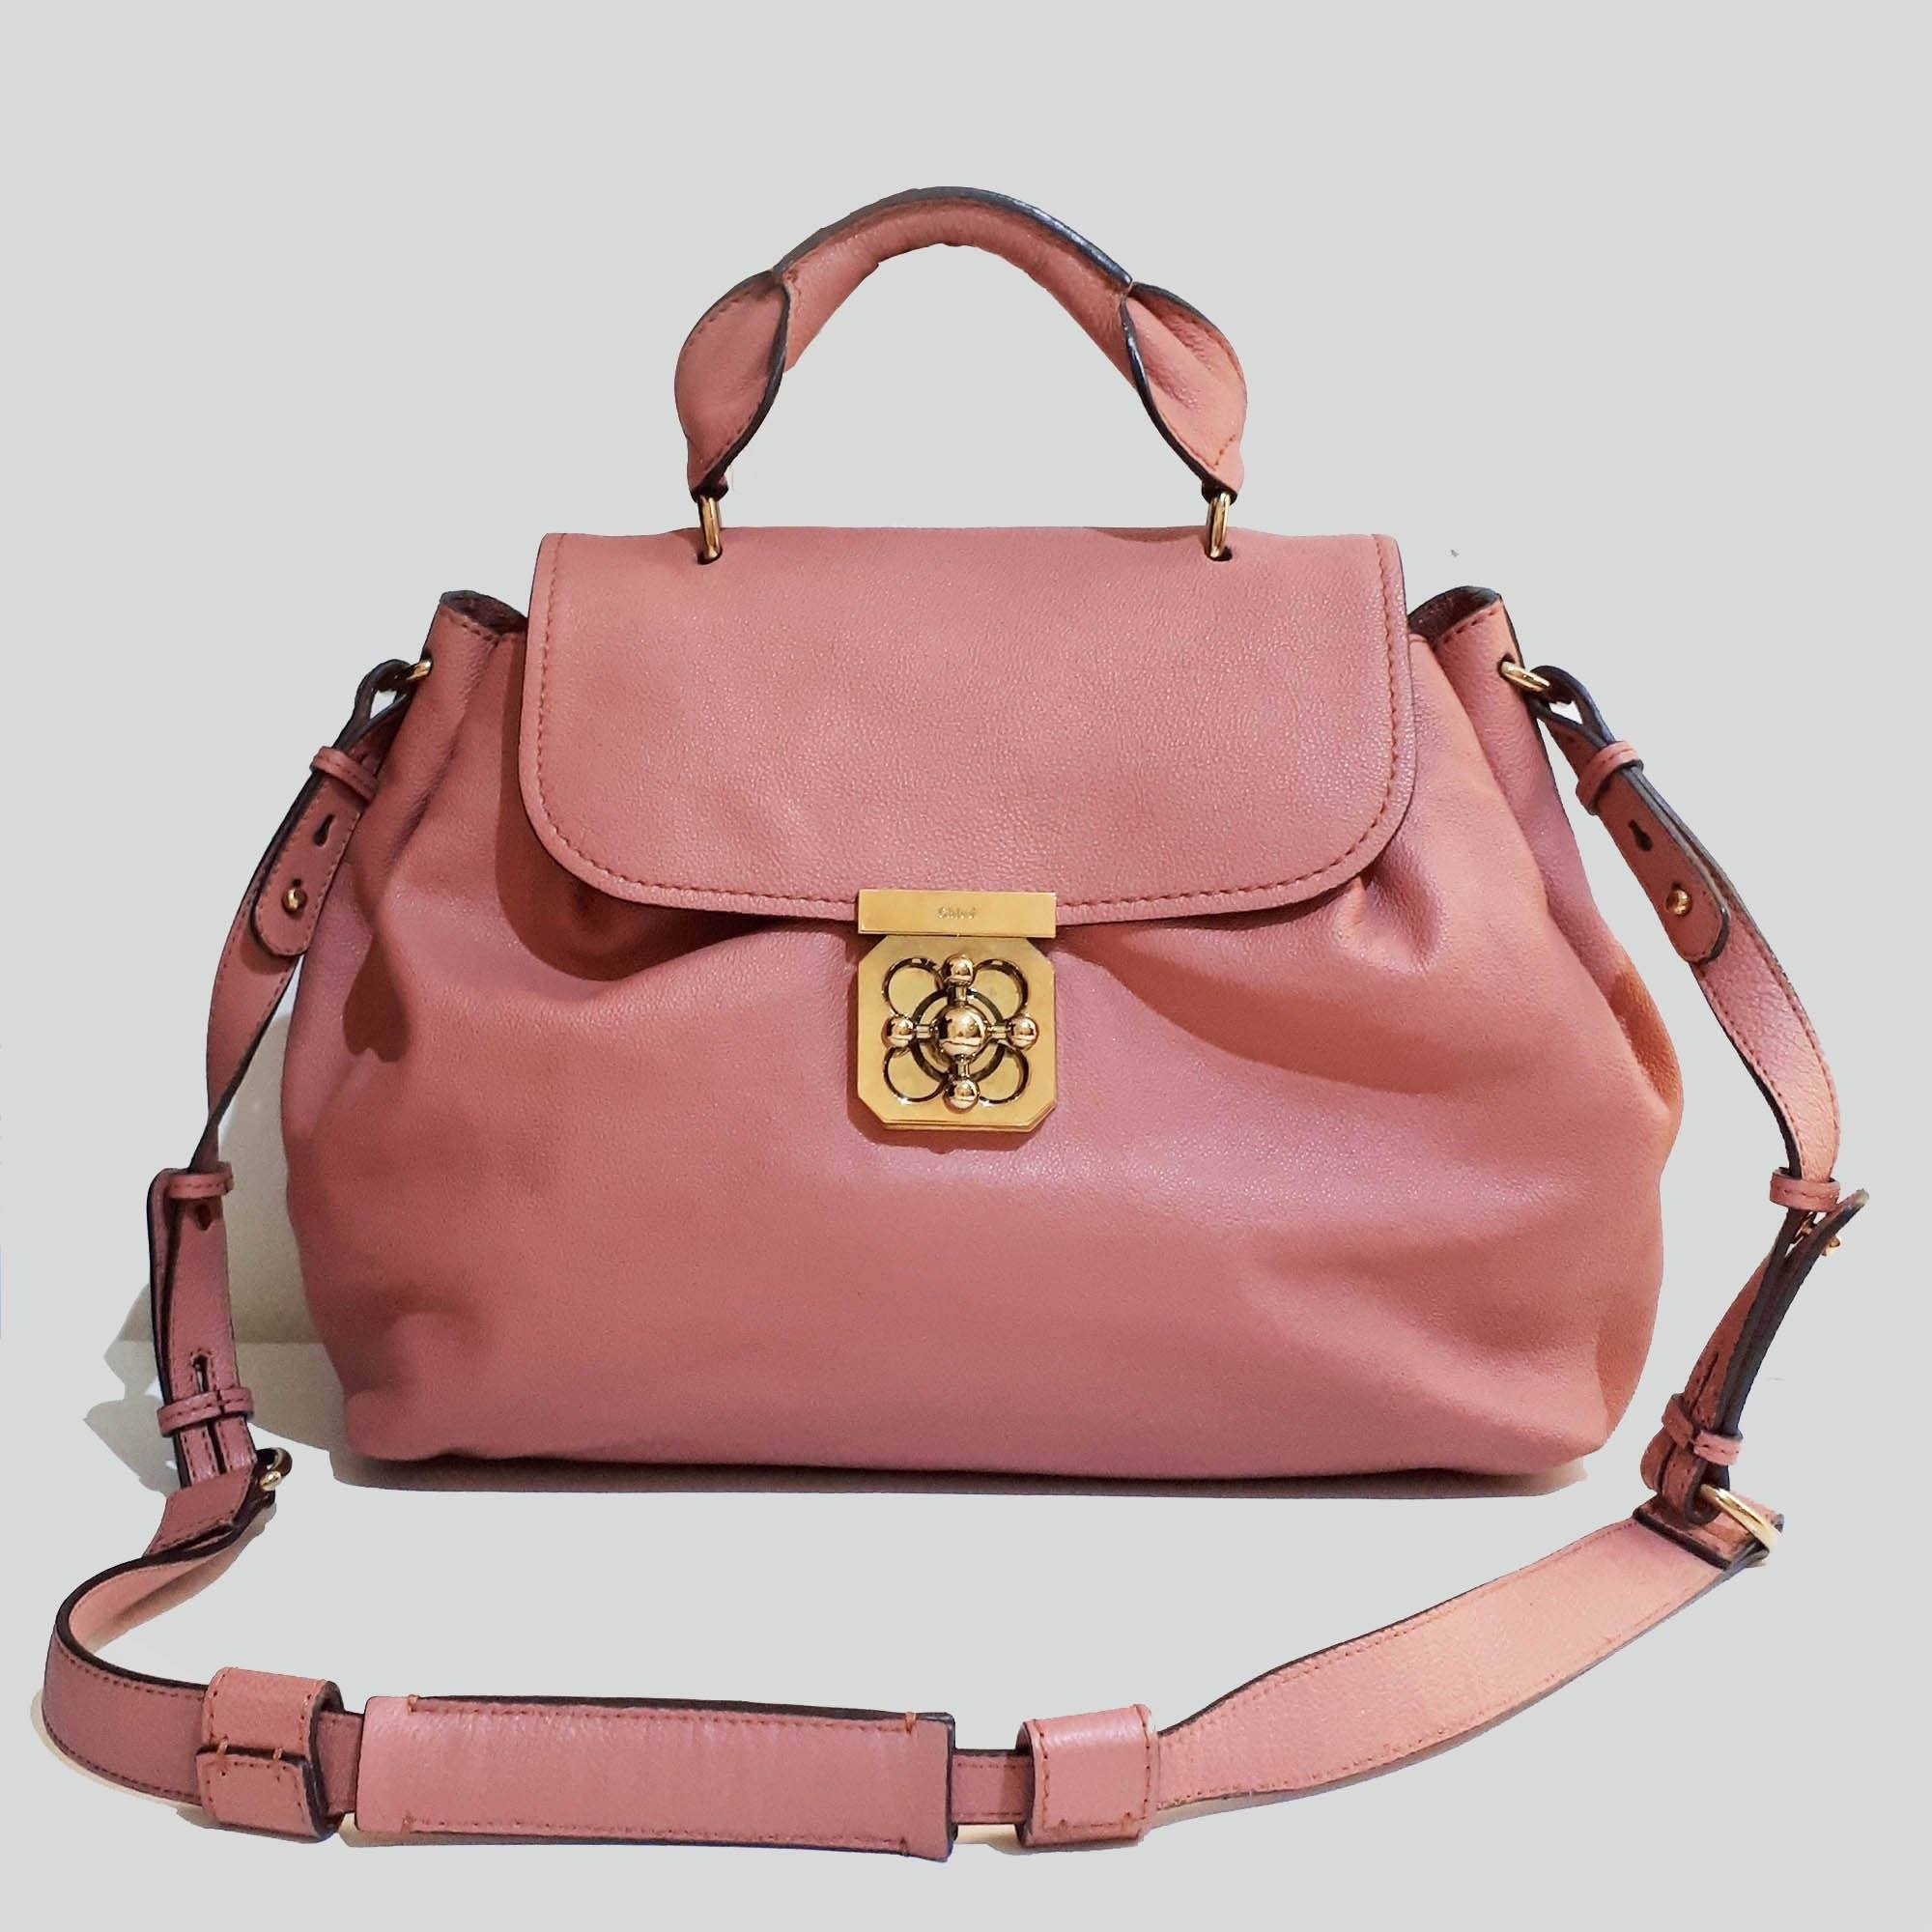 Chloe Medium Elsie Satchel Bag